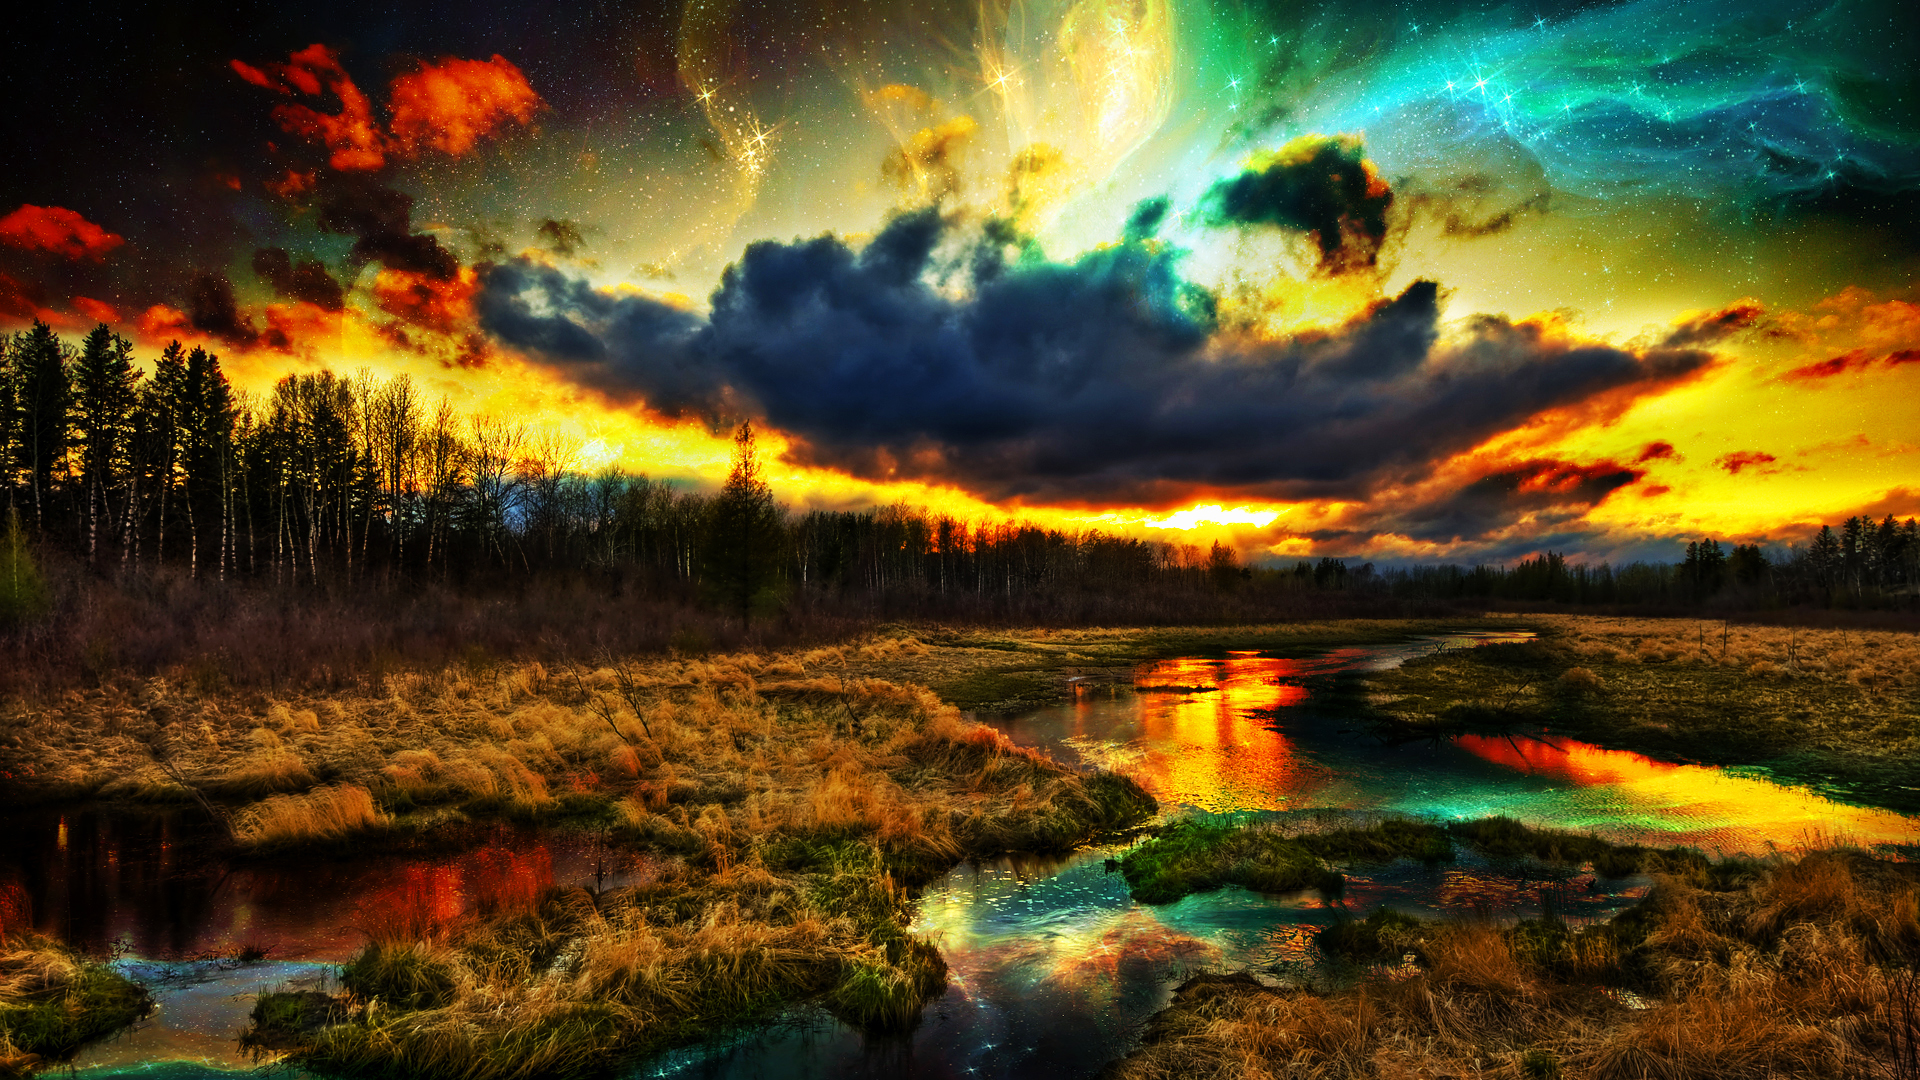 Sci fi landscape wallpaper wallpapersafari - 10k wallpaper nature ...